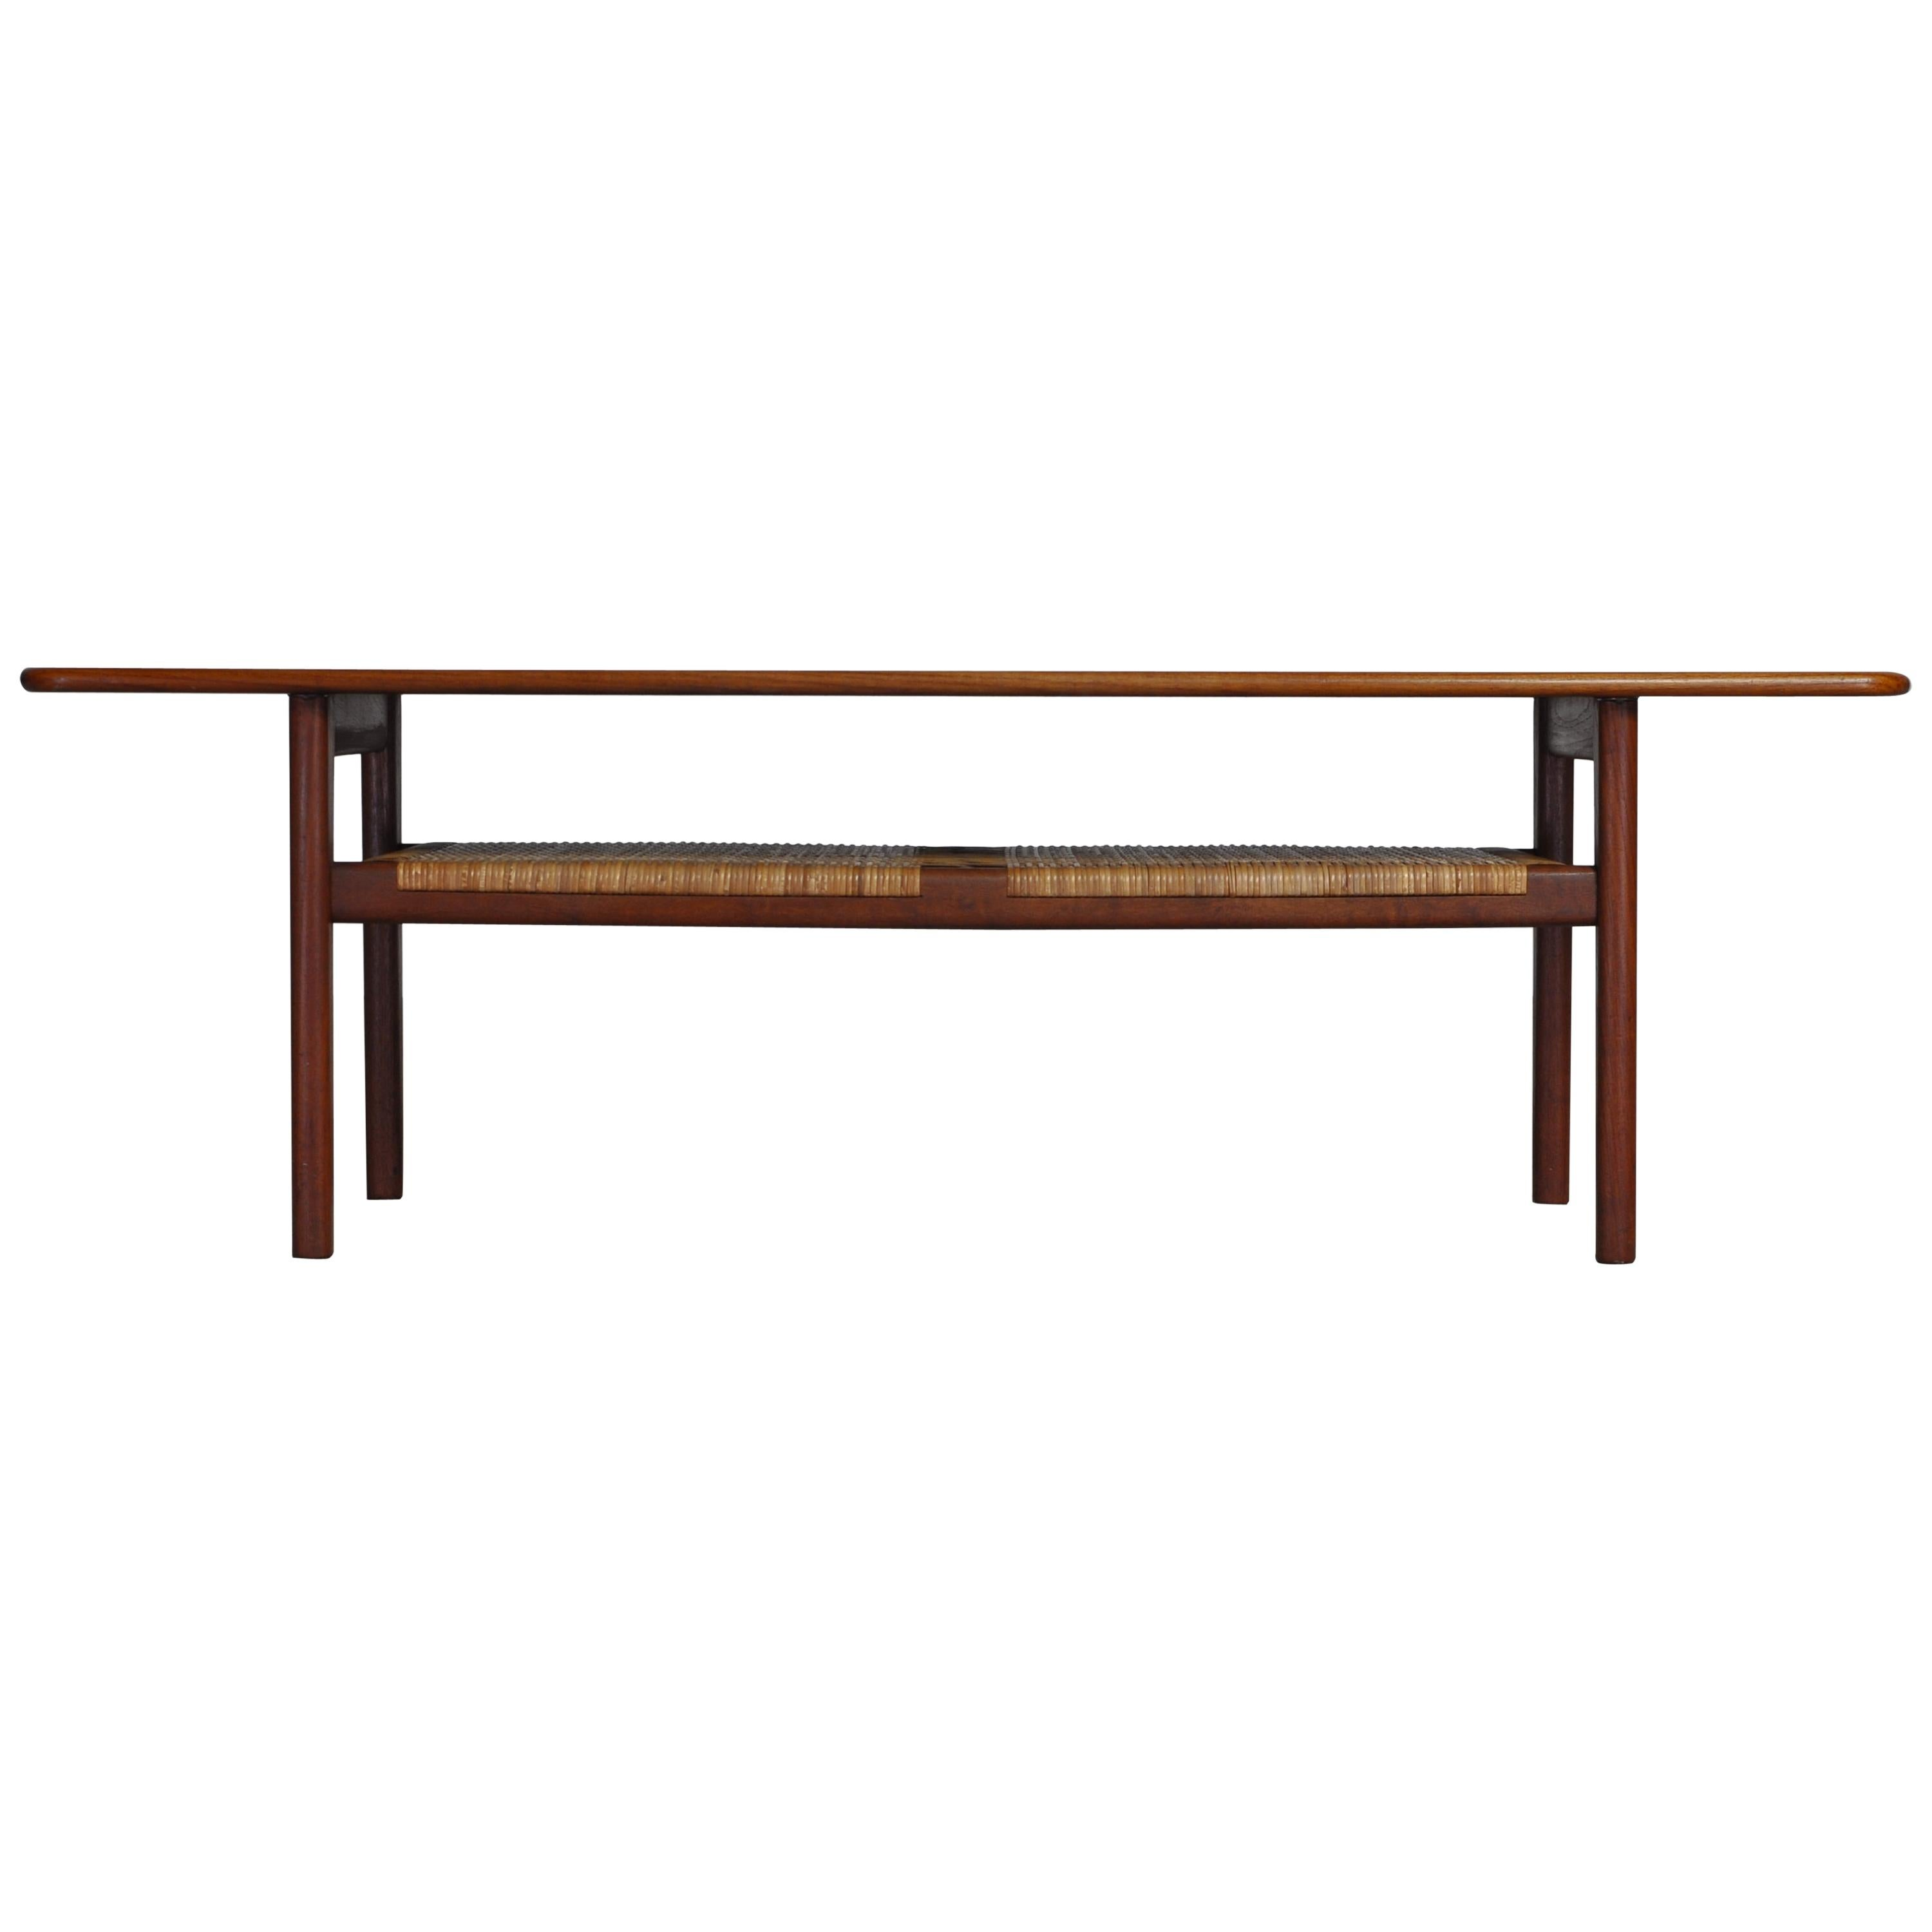 Hans J. Wegner Coffee Table Model AT-10 in Teak and Cane, Andreas Tuck, 1950s